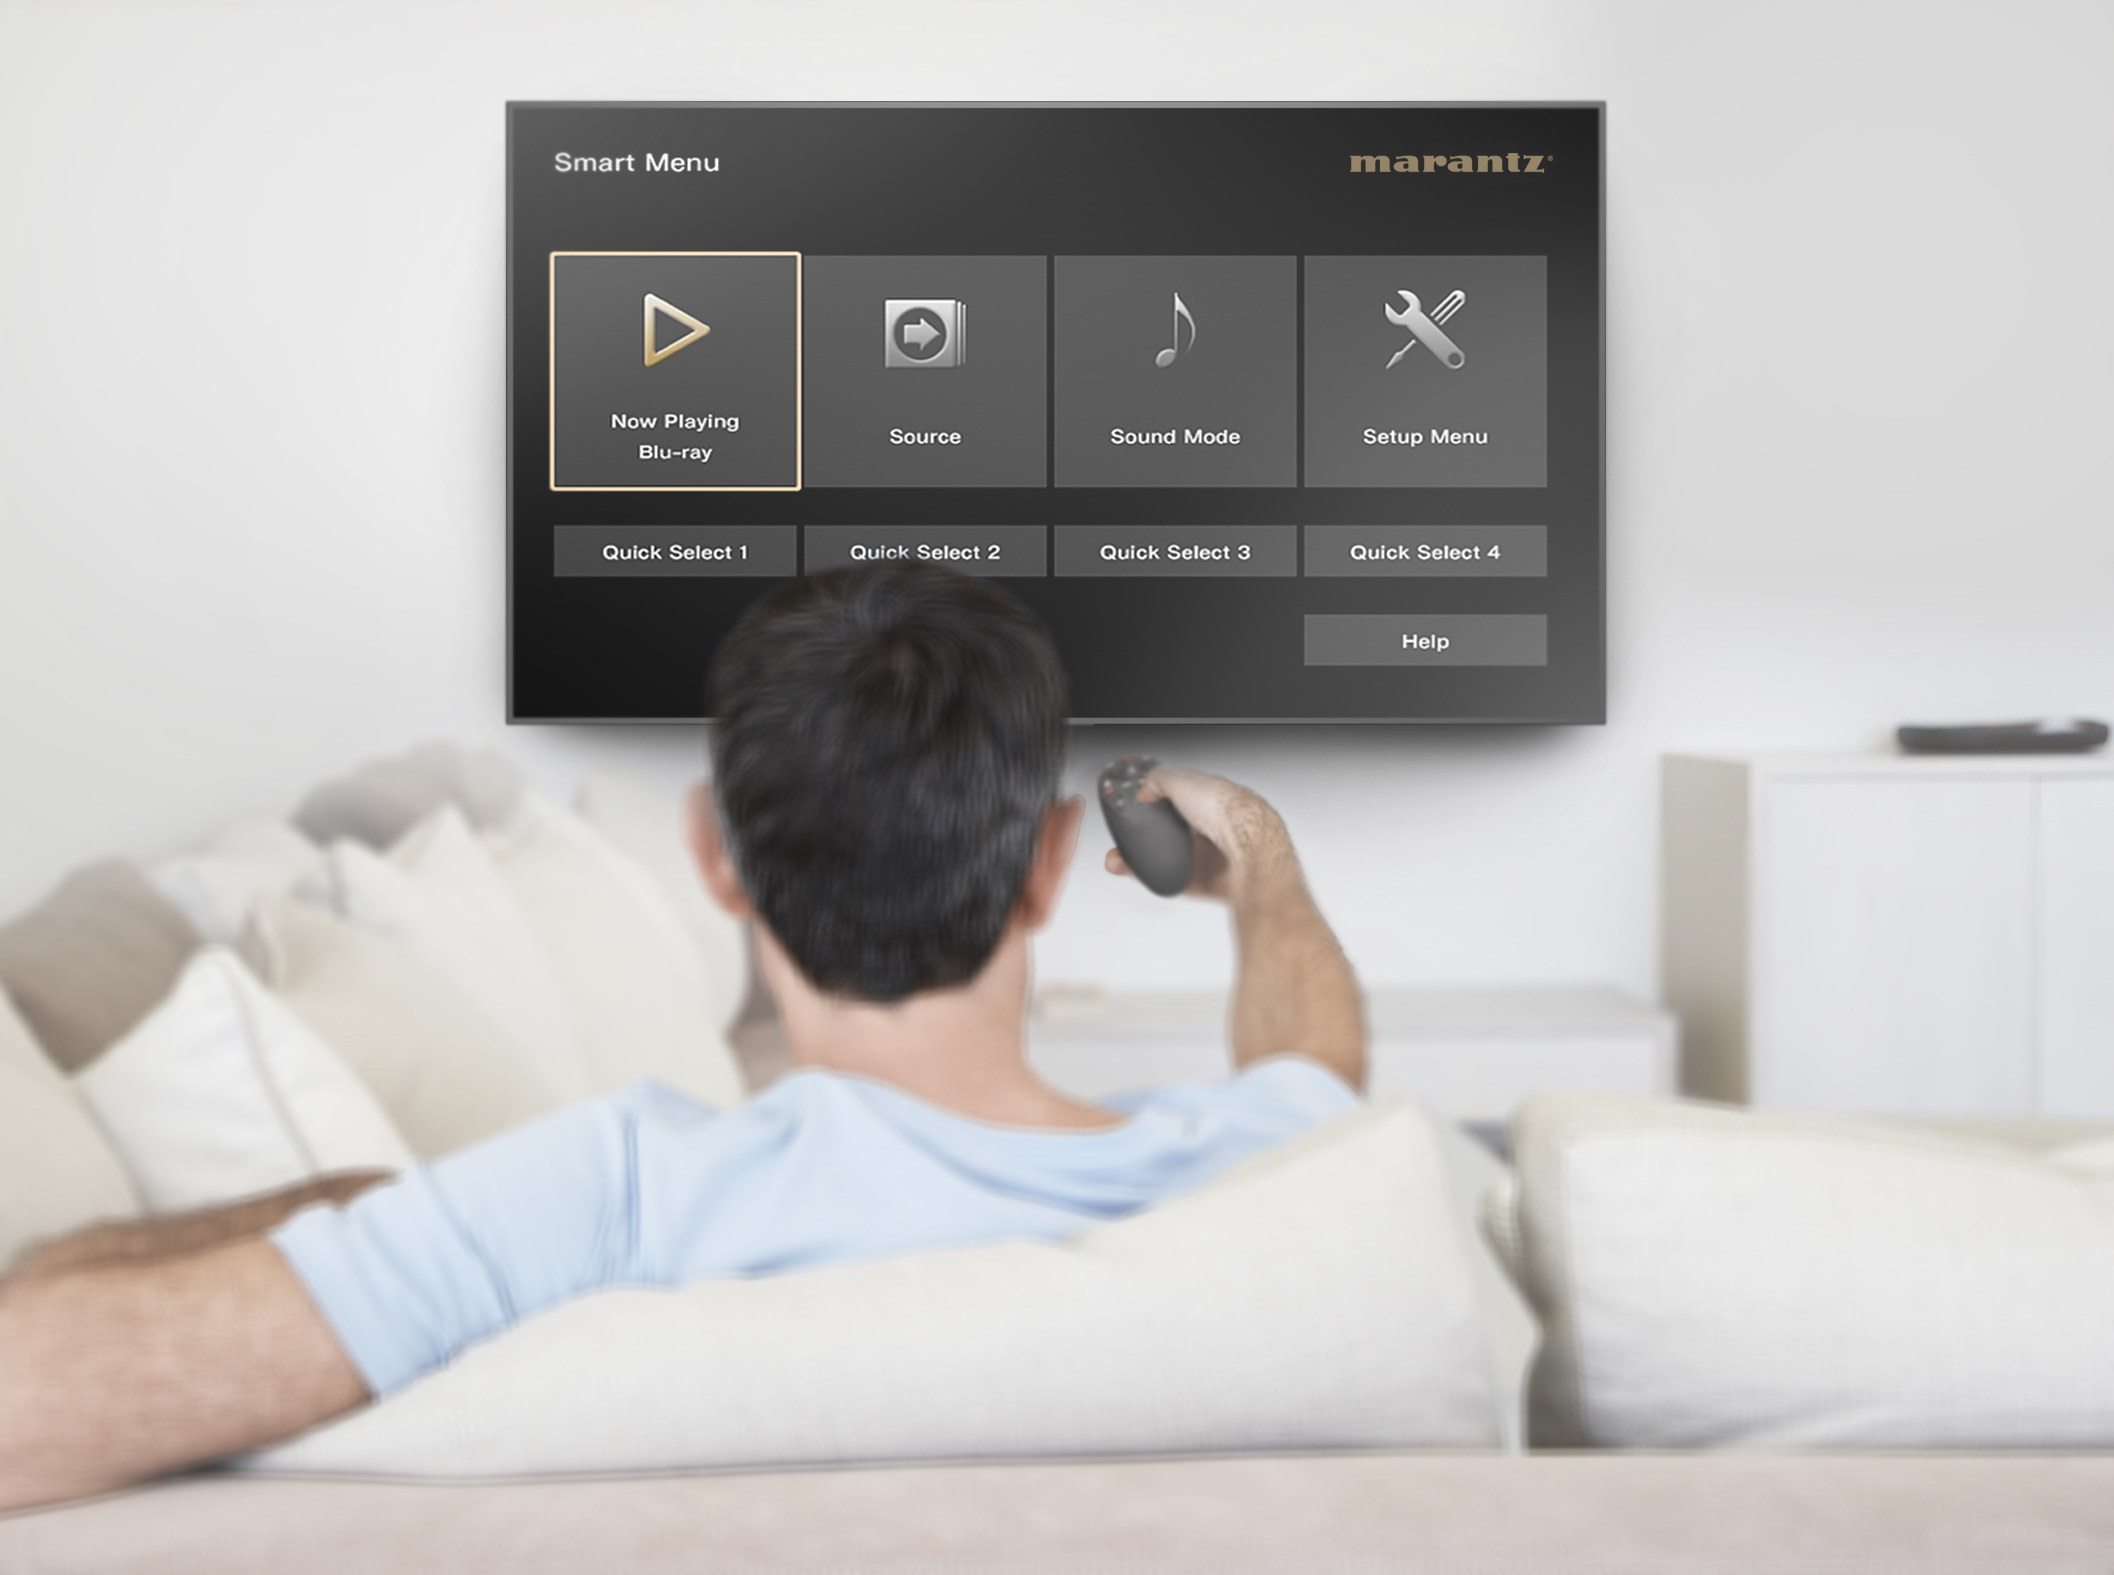 Connect your Smart-TV